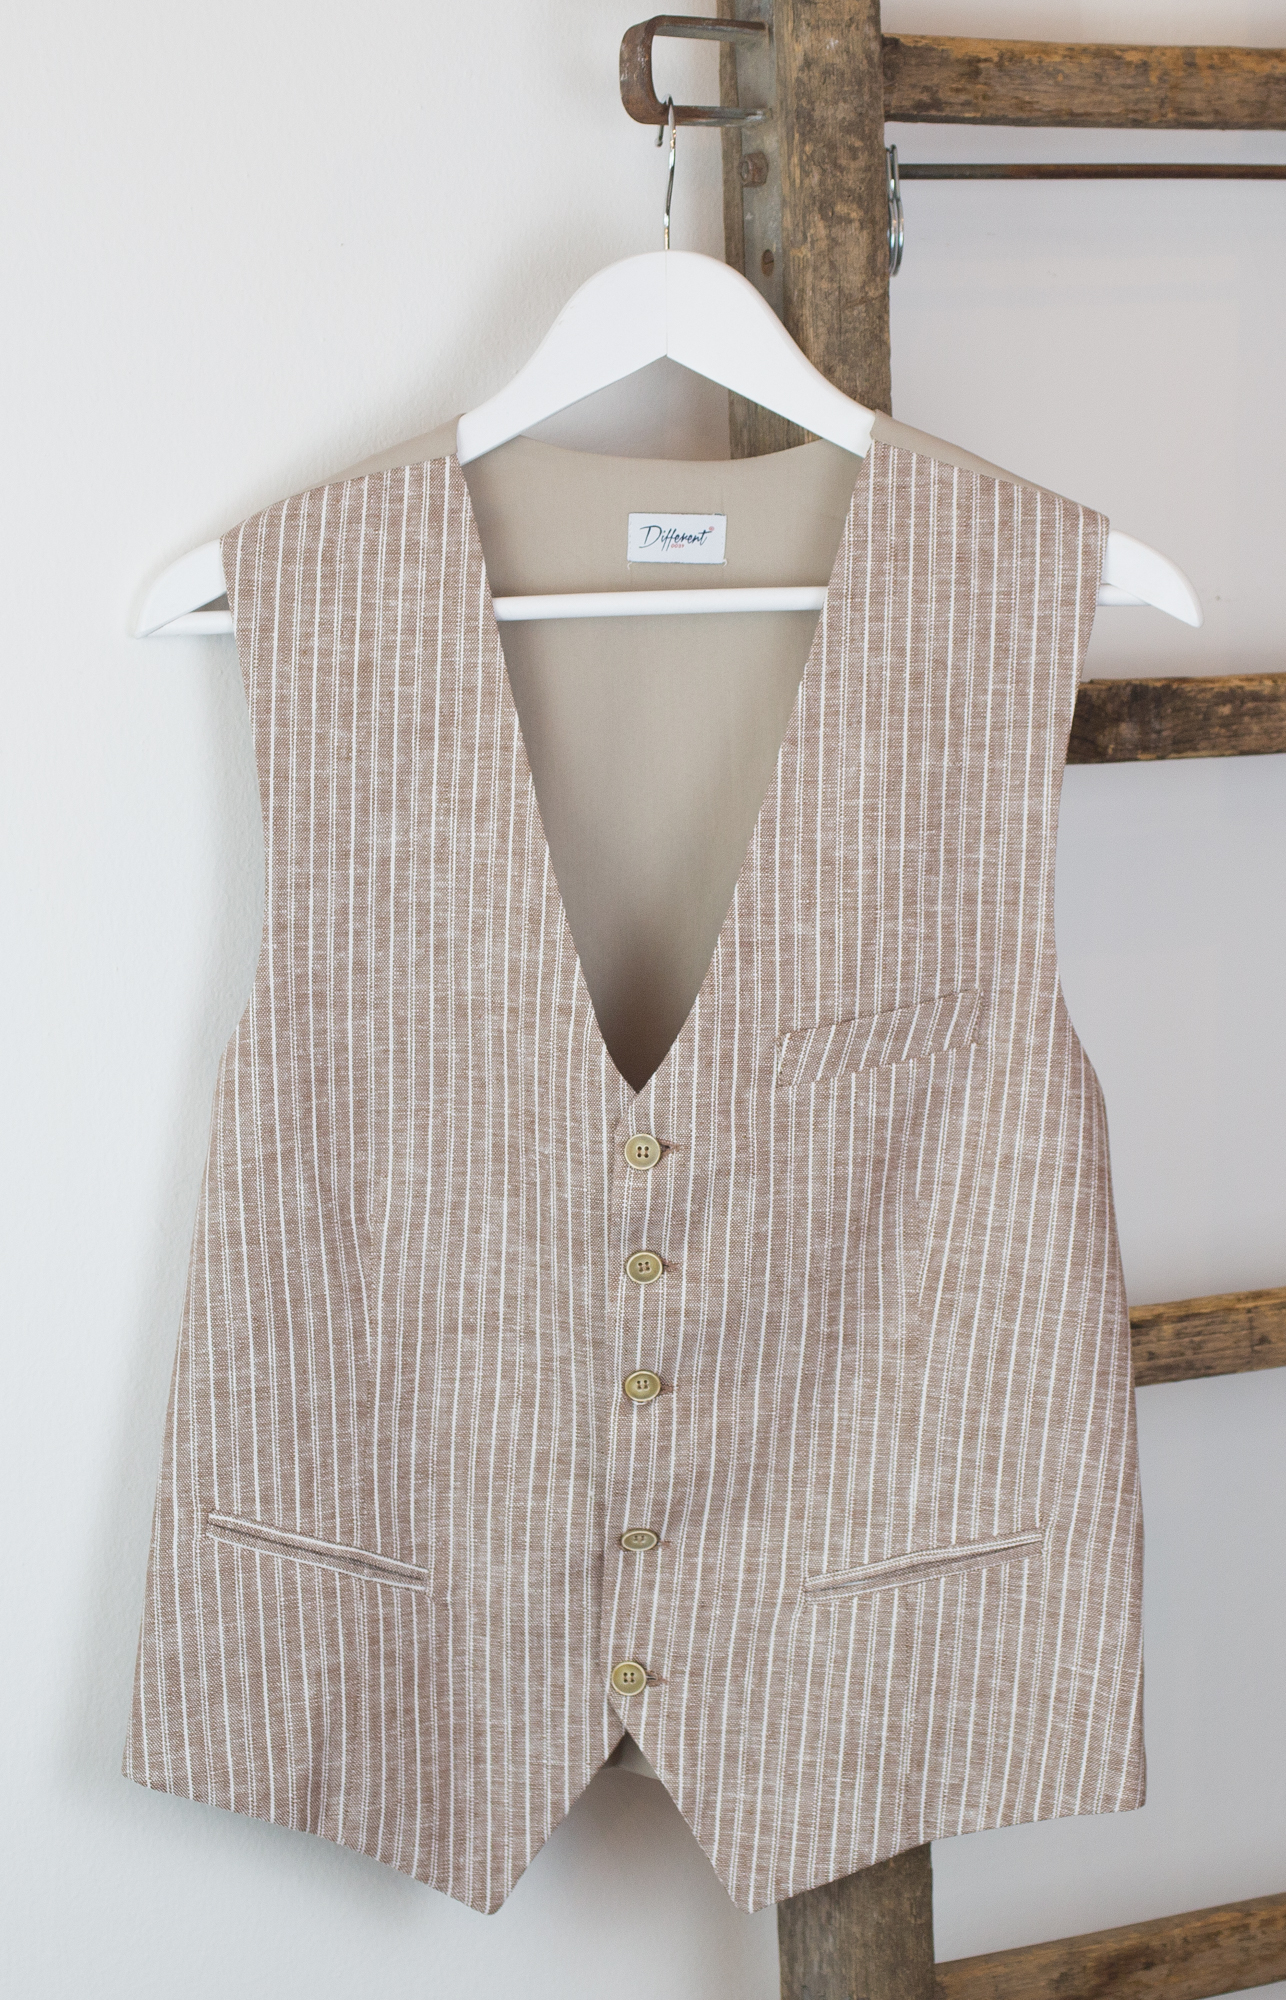 Gilet beige a righe Different